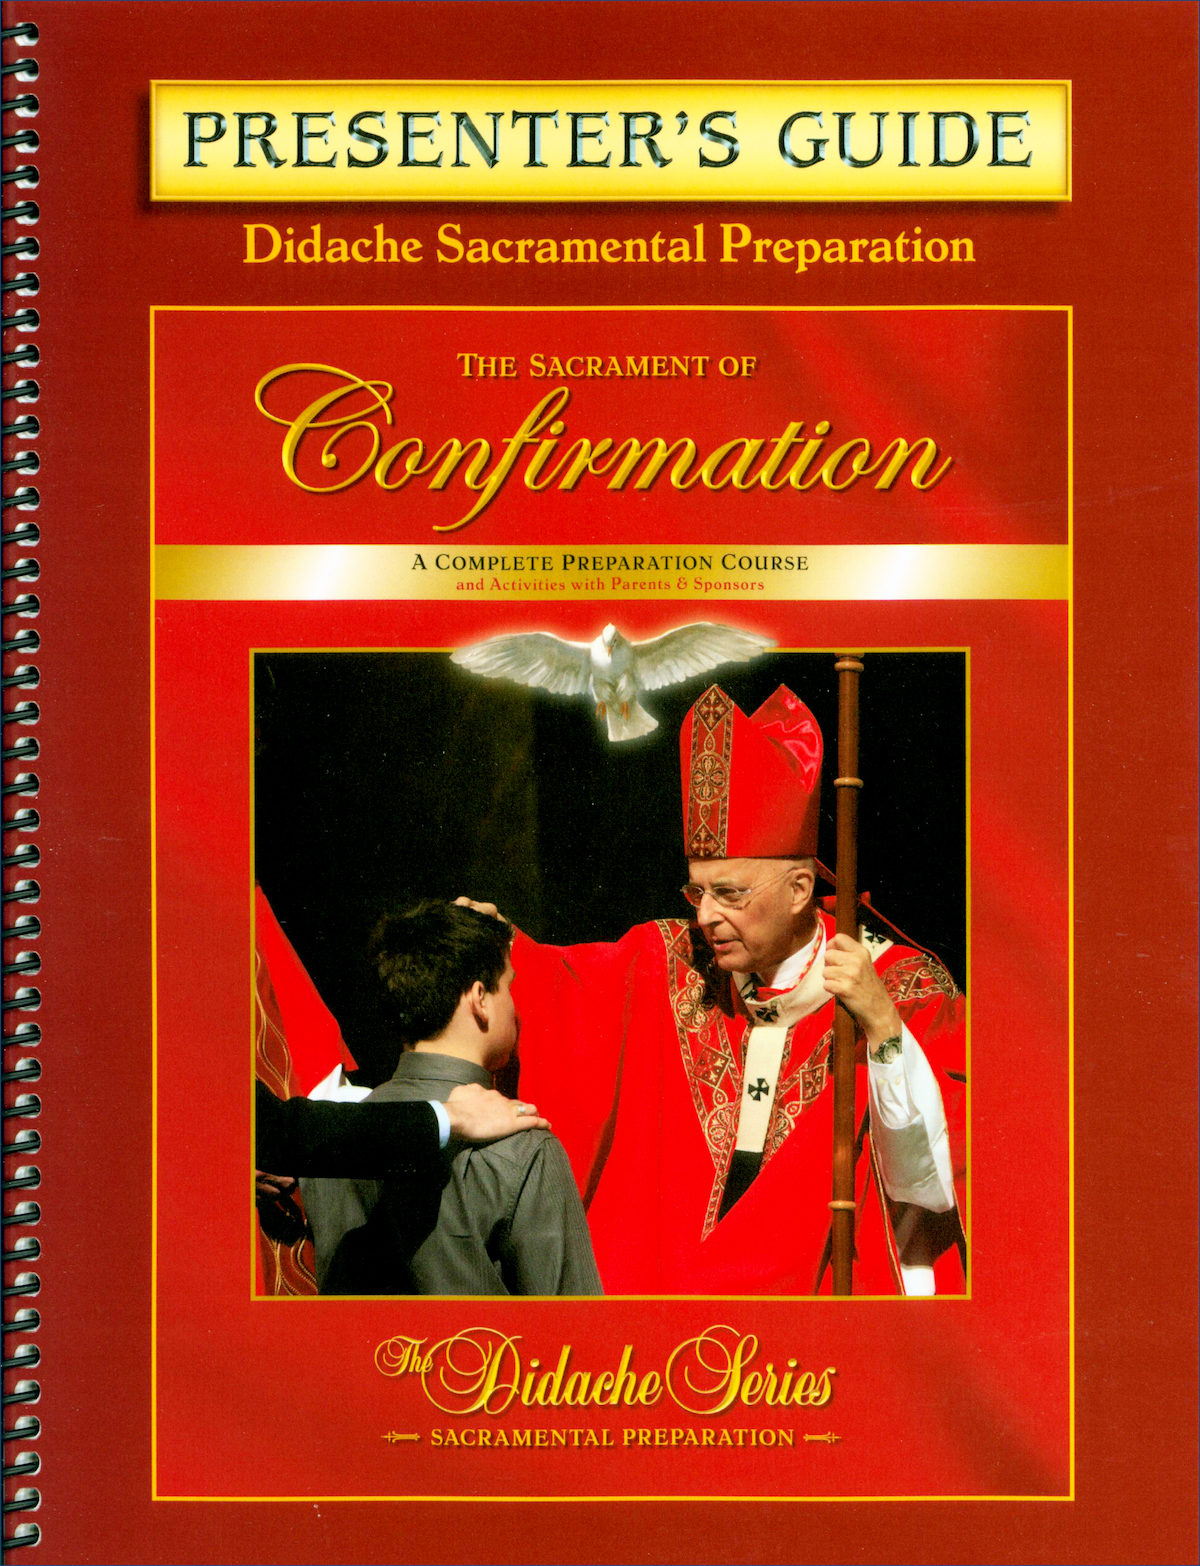 Didache Sacramental Preparation Series: The Sacrament of Confirmation:  Sacrament Of Confirmation, Presenter's Guide | Communication Center -  Catholic ...